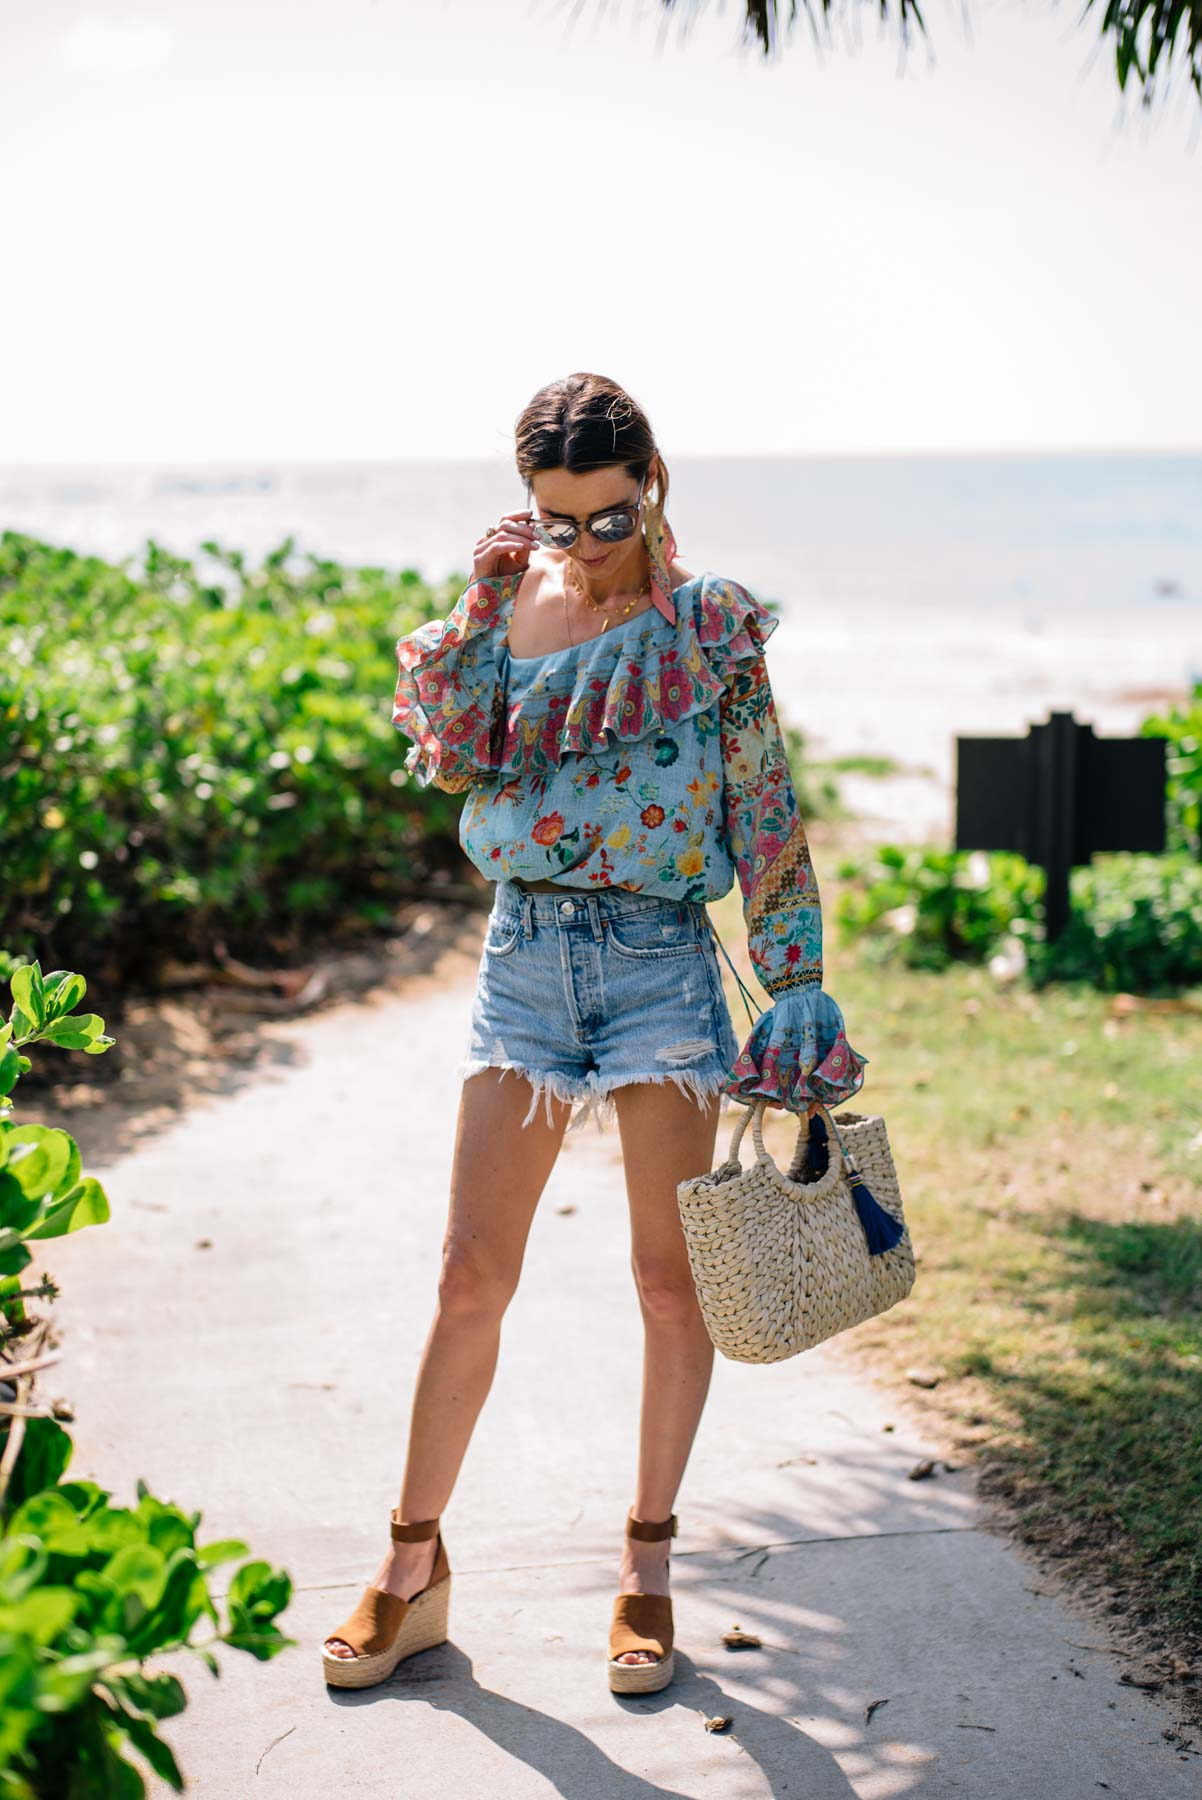 Jess Ann Kirby styles denim shorts for spring and summer with a colorful blouse and espadrilles